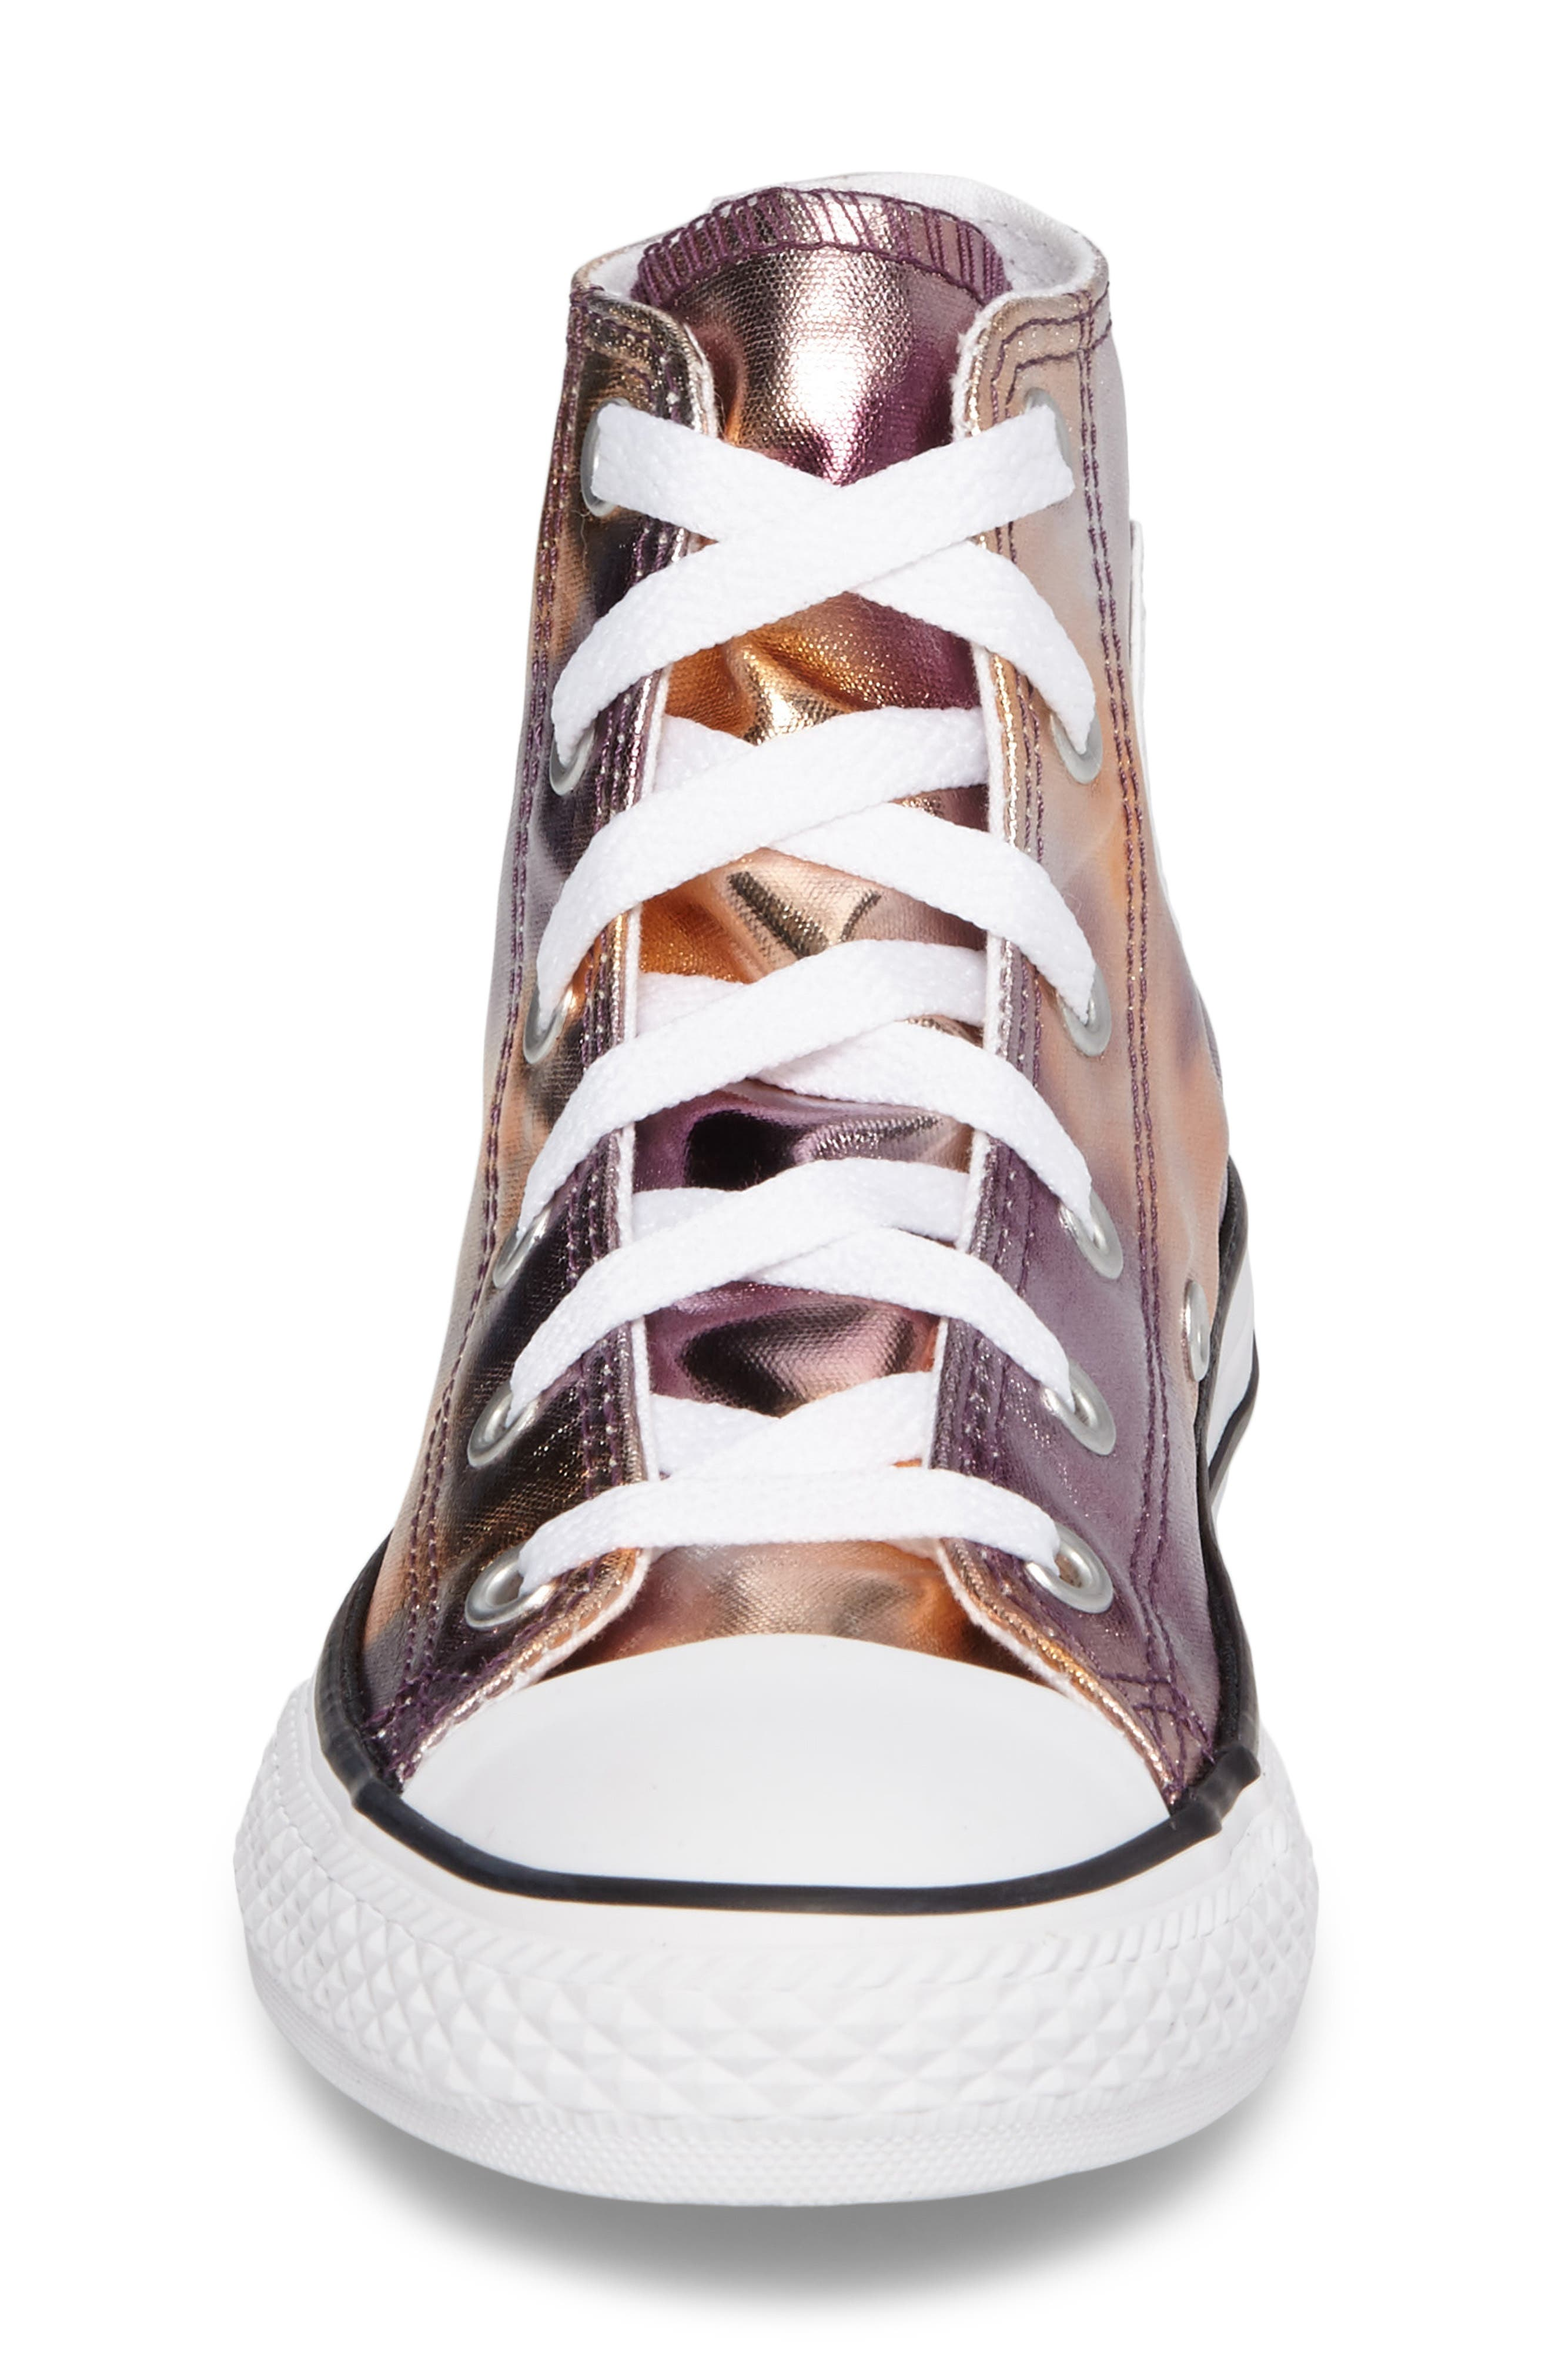 Chuck Taylor<sup>®</sup> All Star<sup>®</sup> Metallic High Top Sneaker,                             Alternate thumbnail 4, color,                             220